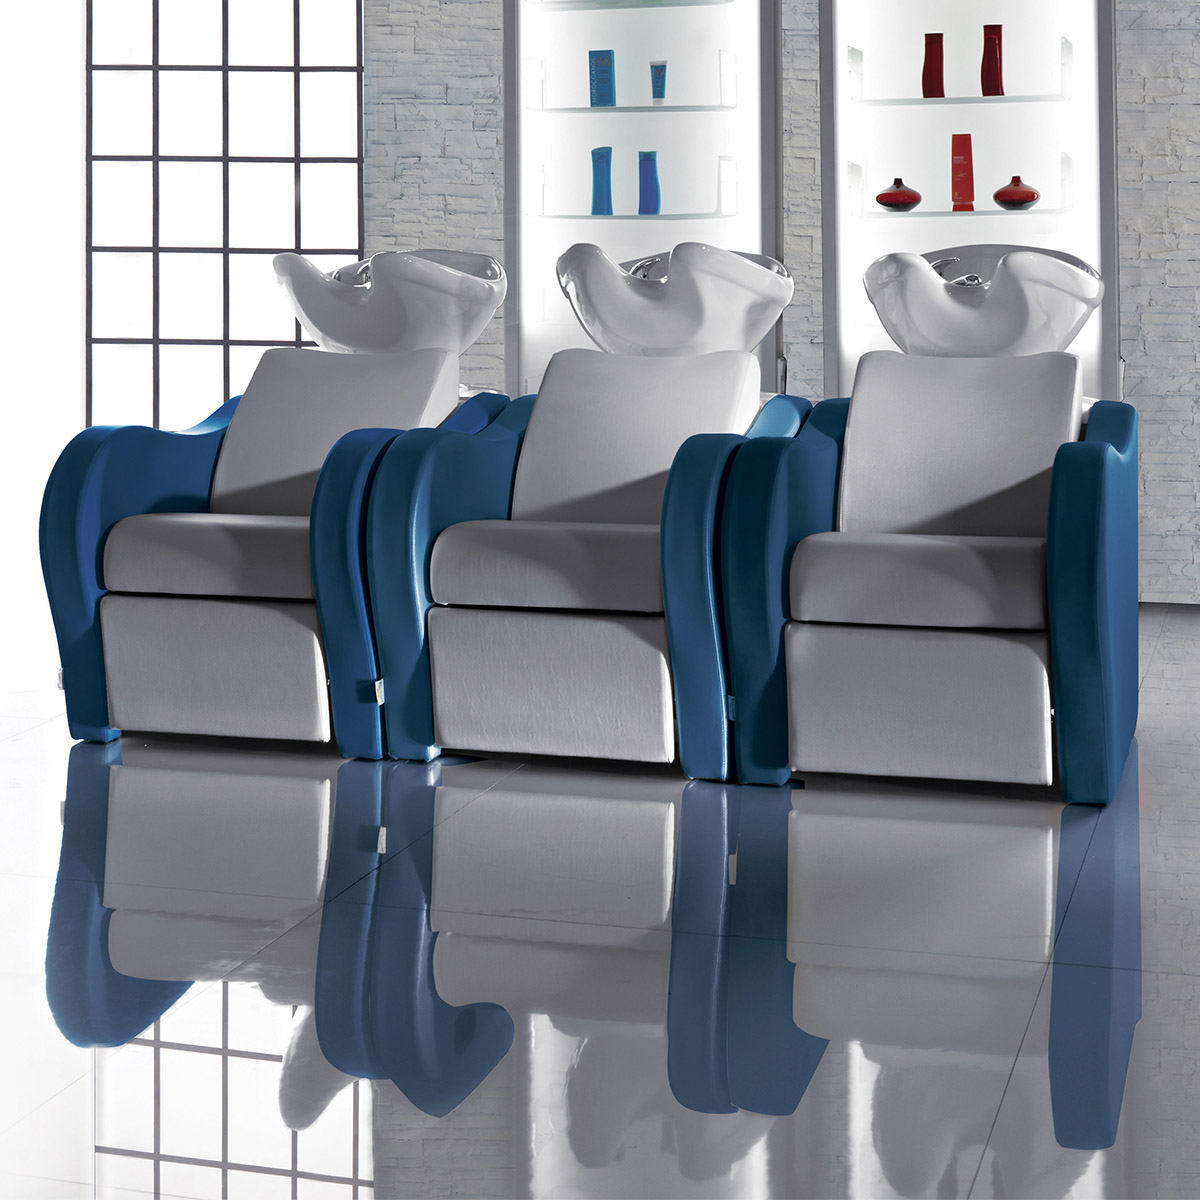 Luxury Shampoo Station with Chair by Salon Ambience alternative product image 4